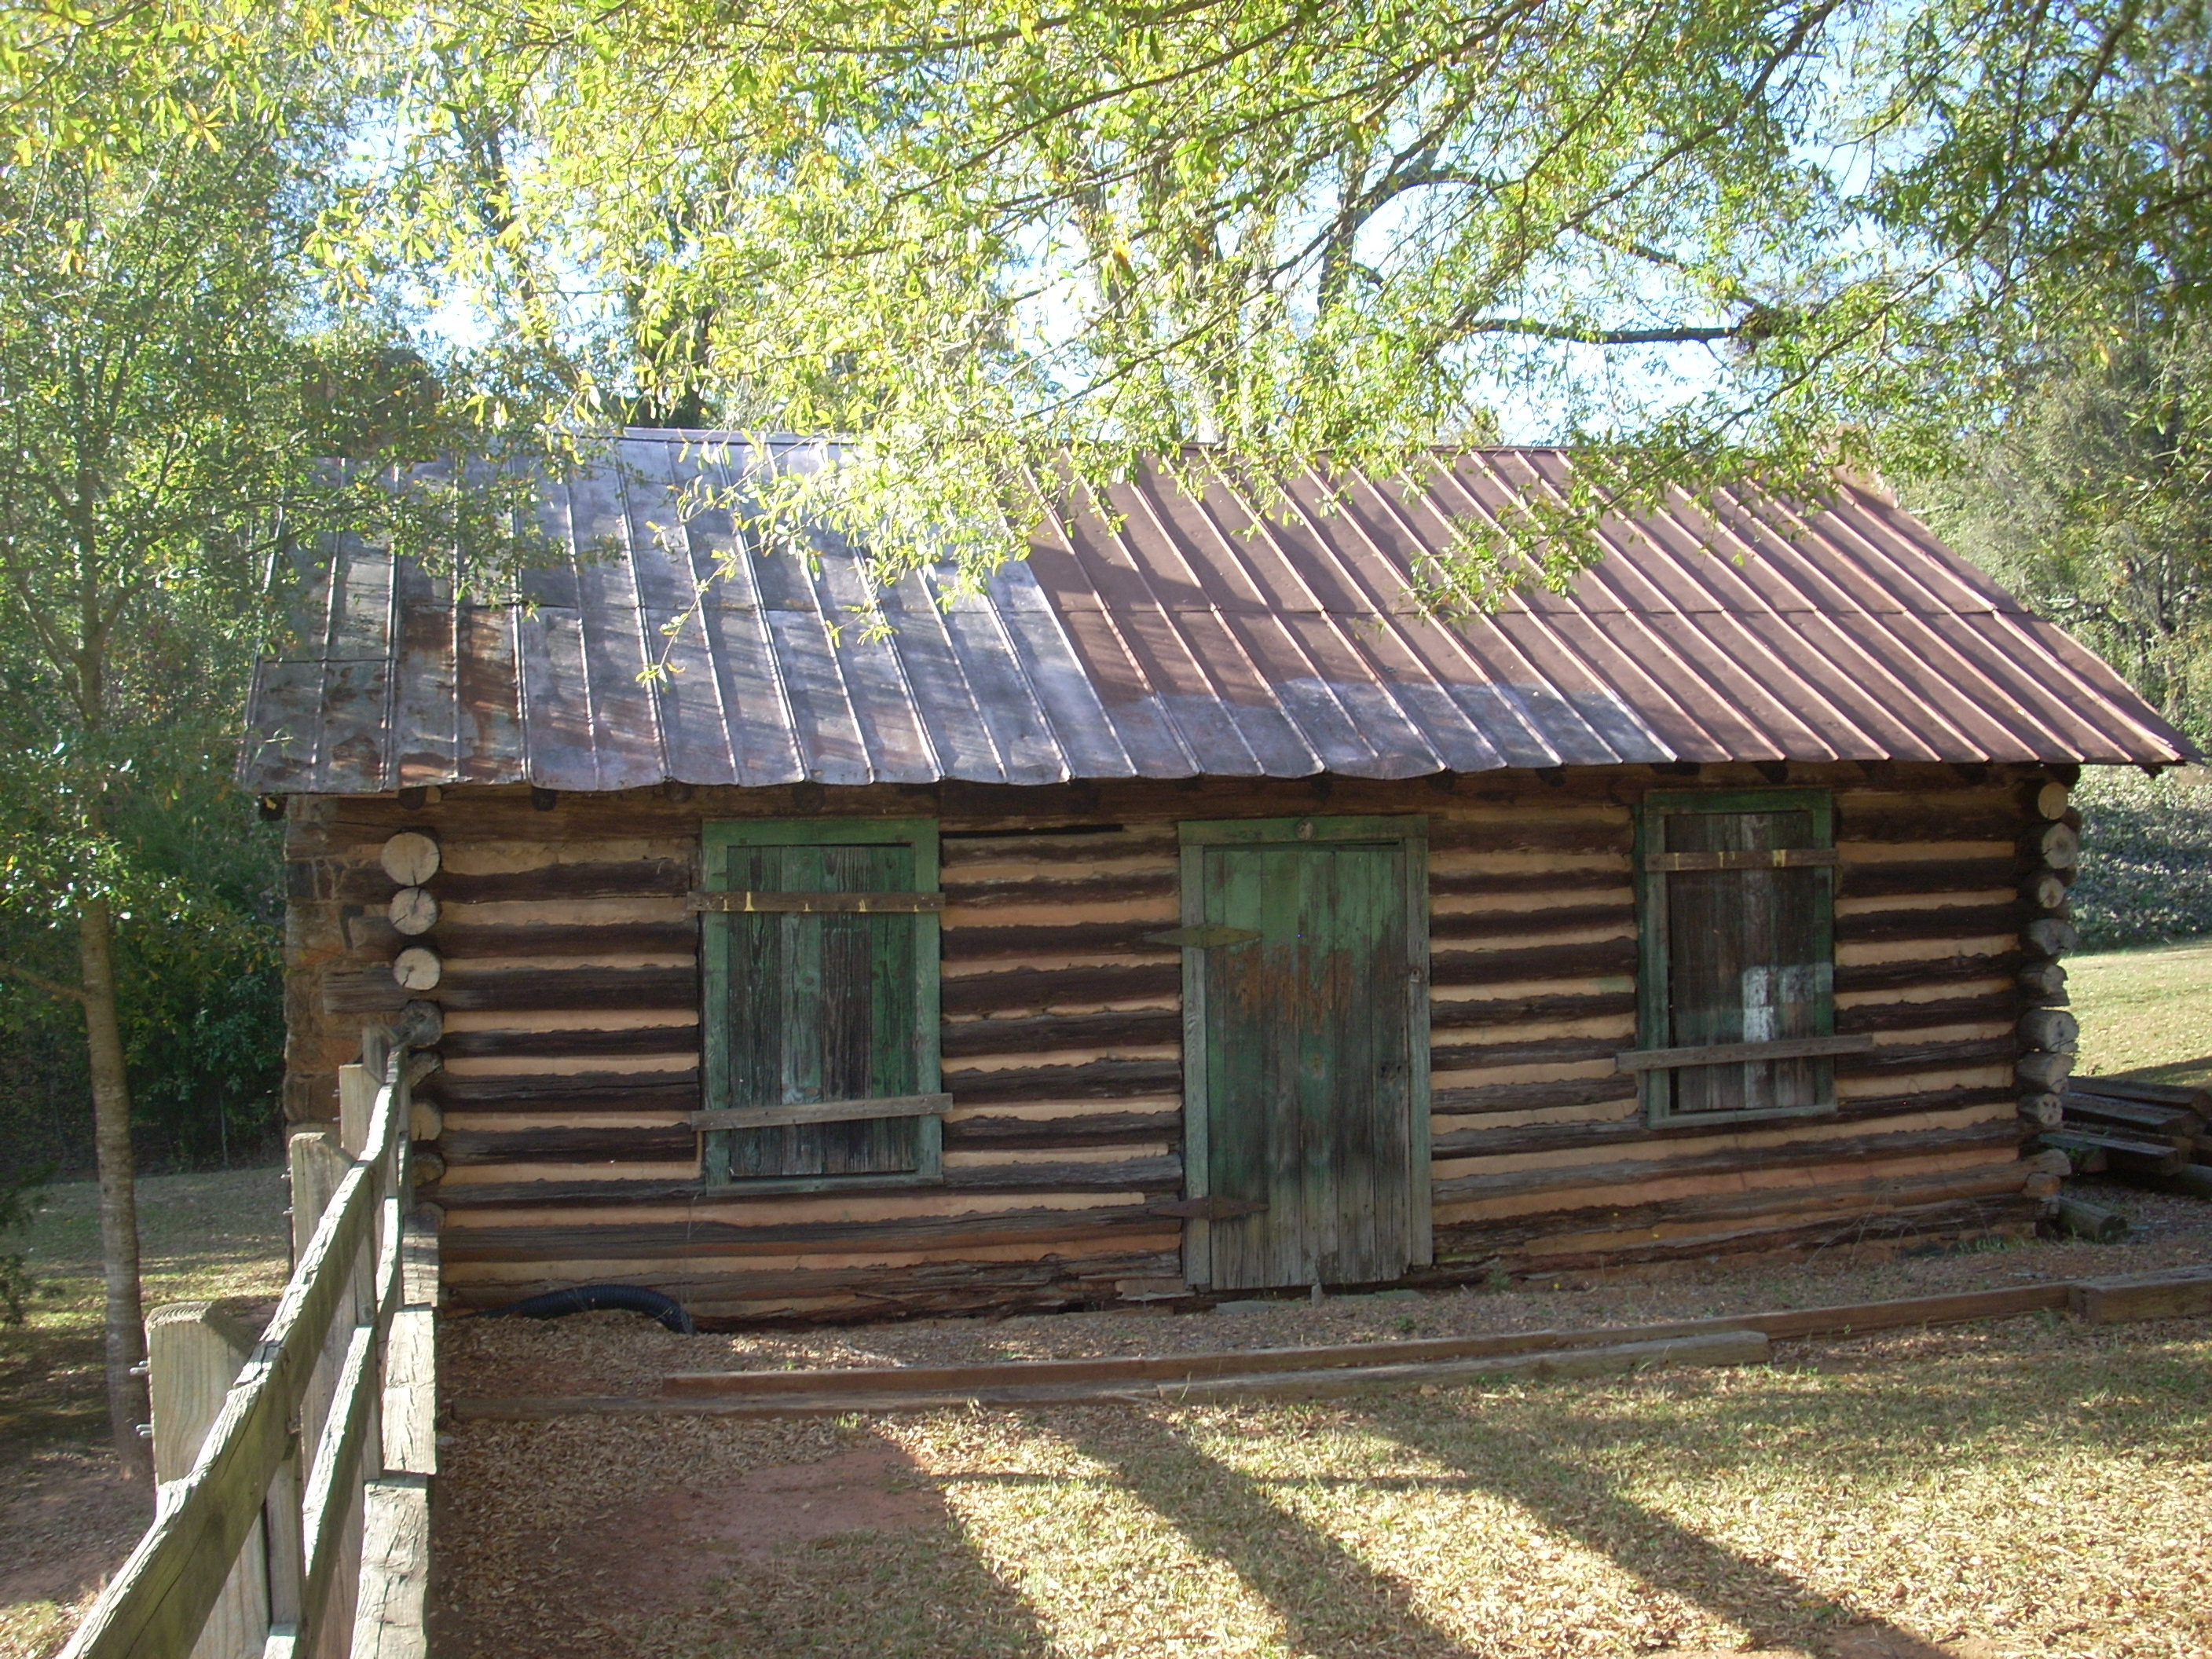 slave america topics carolina south history life cabins slavery cabin in of black pictures quarters replica interior